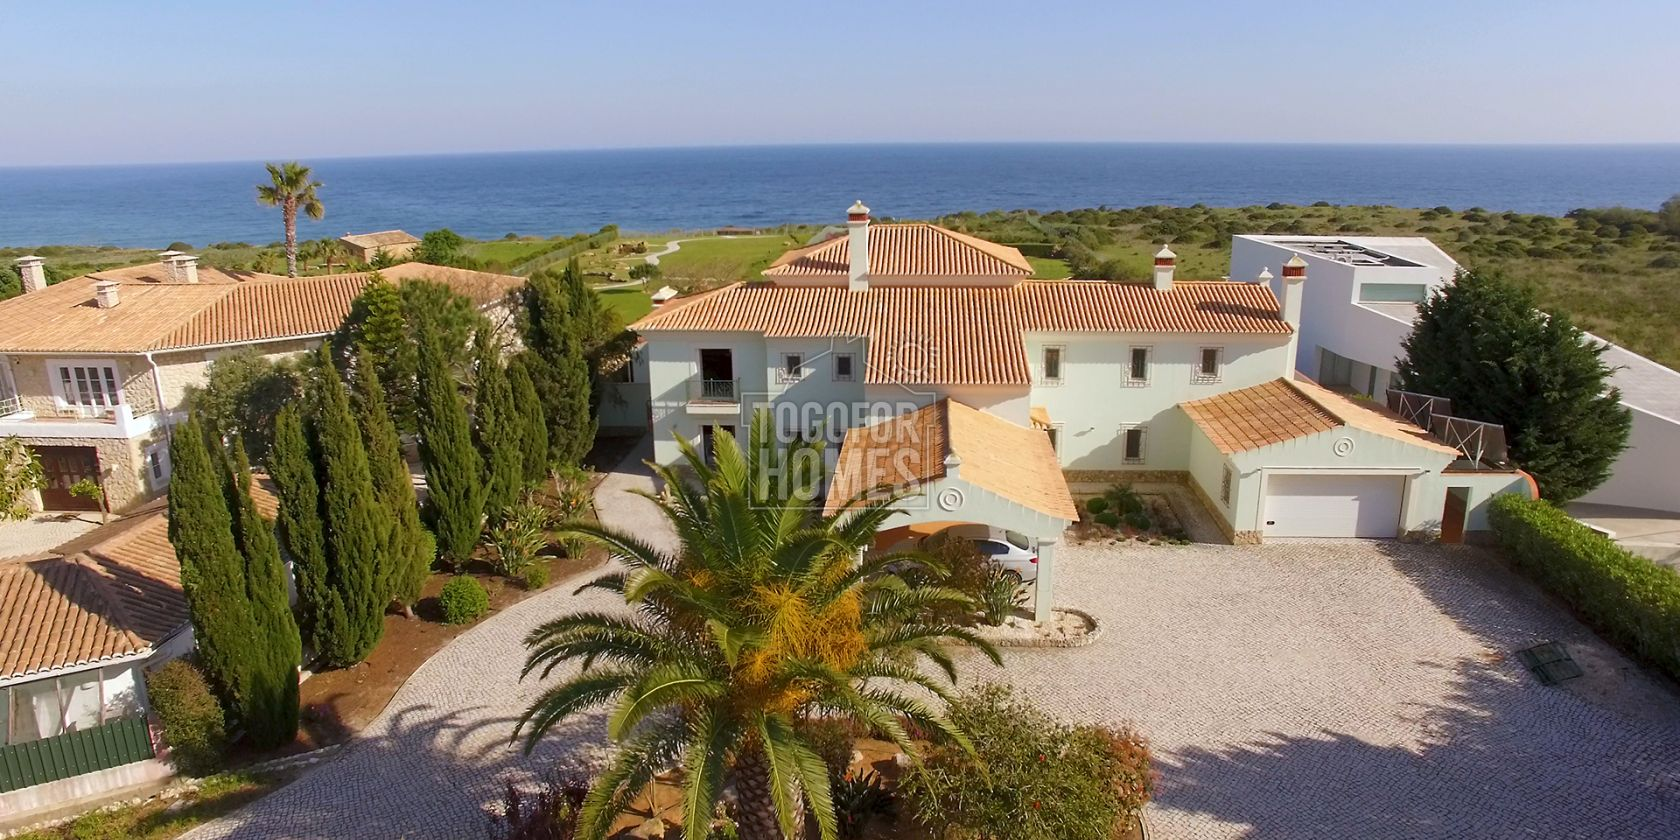 LG814 - Magnificent 5 Bedroom front-line villa, with pool, between Burgau and Praia da Luz, West Algarve